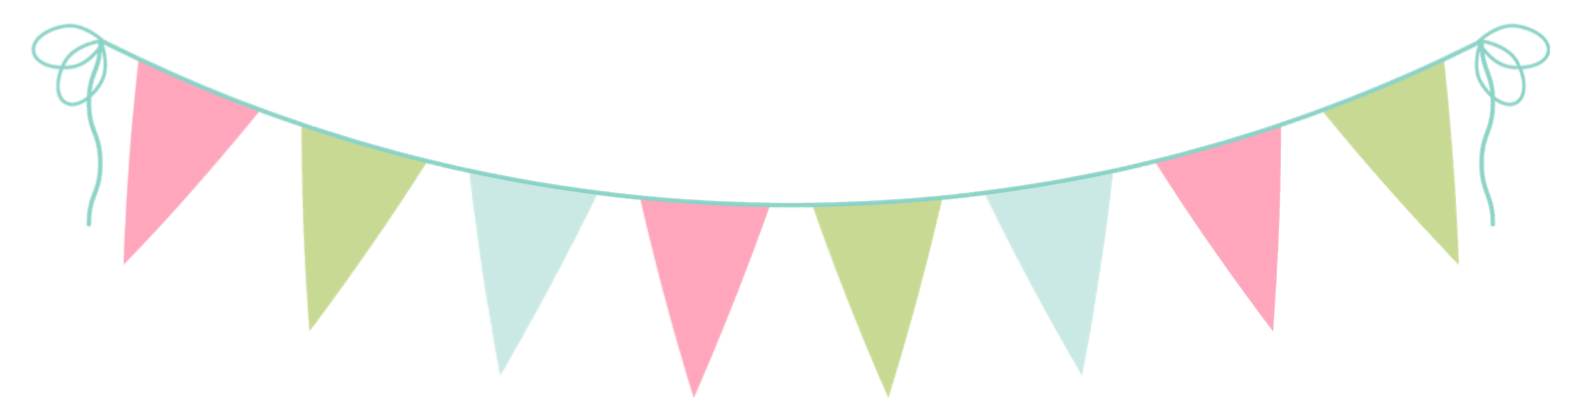 Pennant free download best. Surprise clipart banner